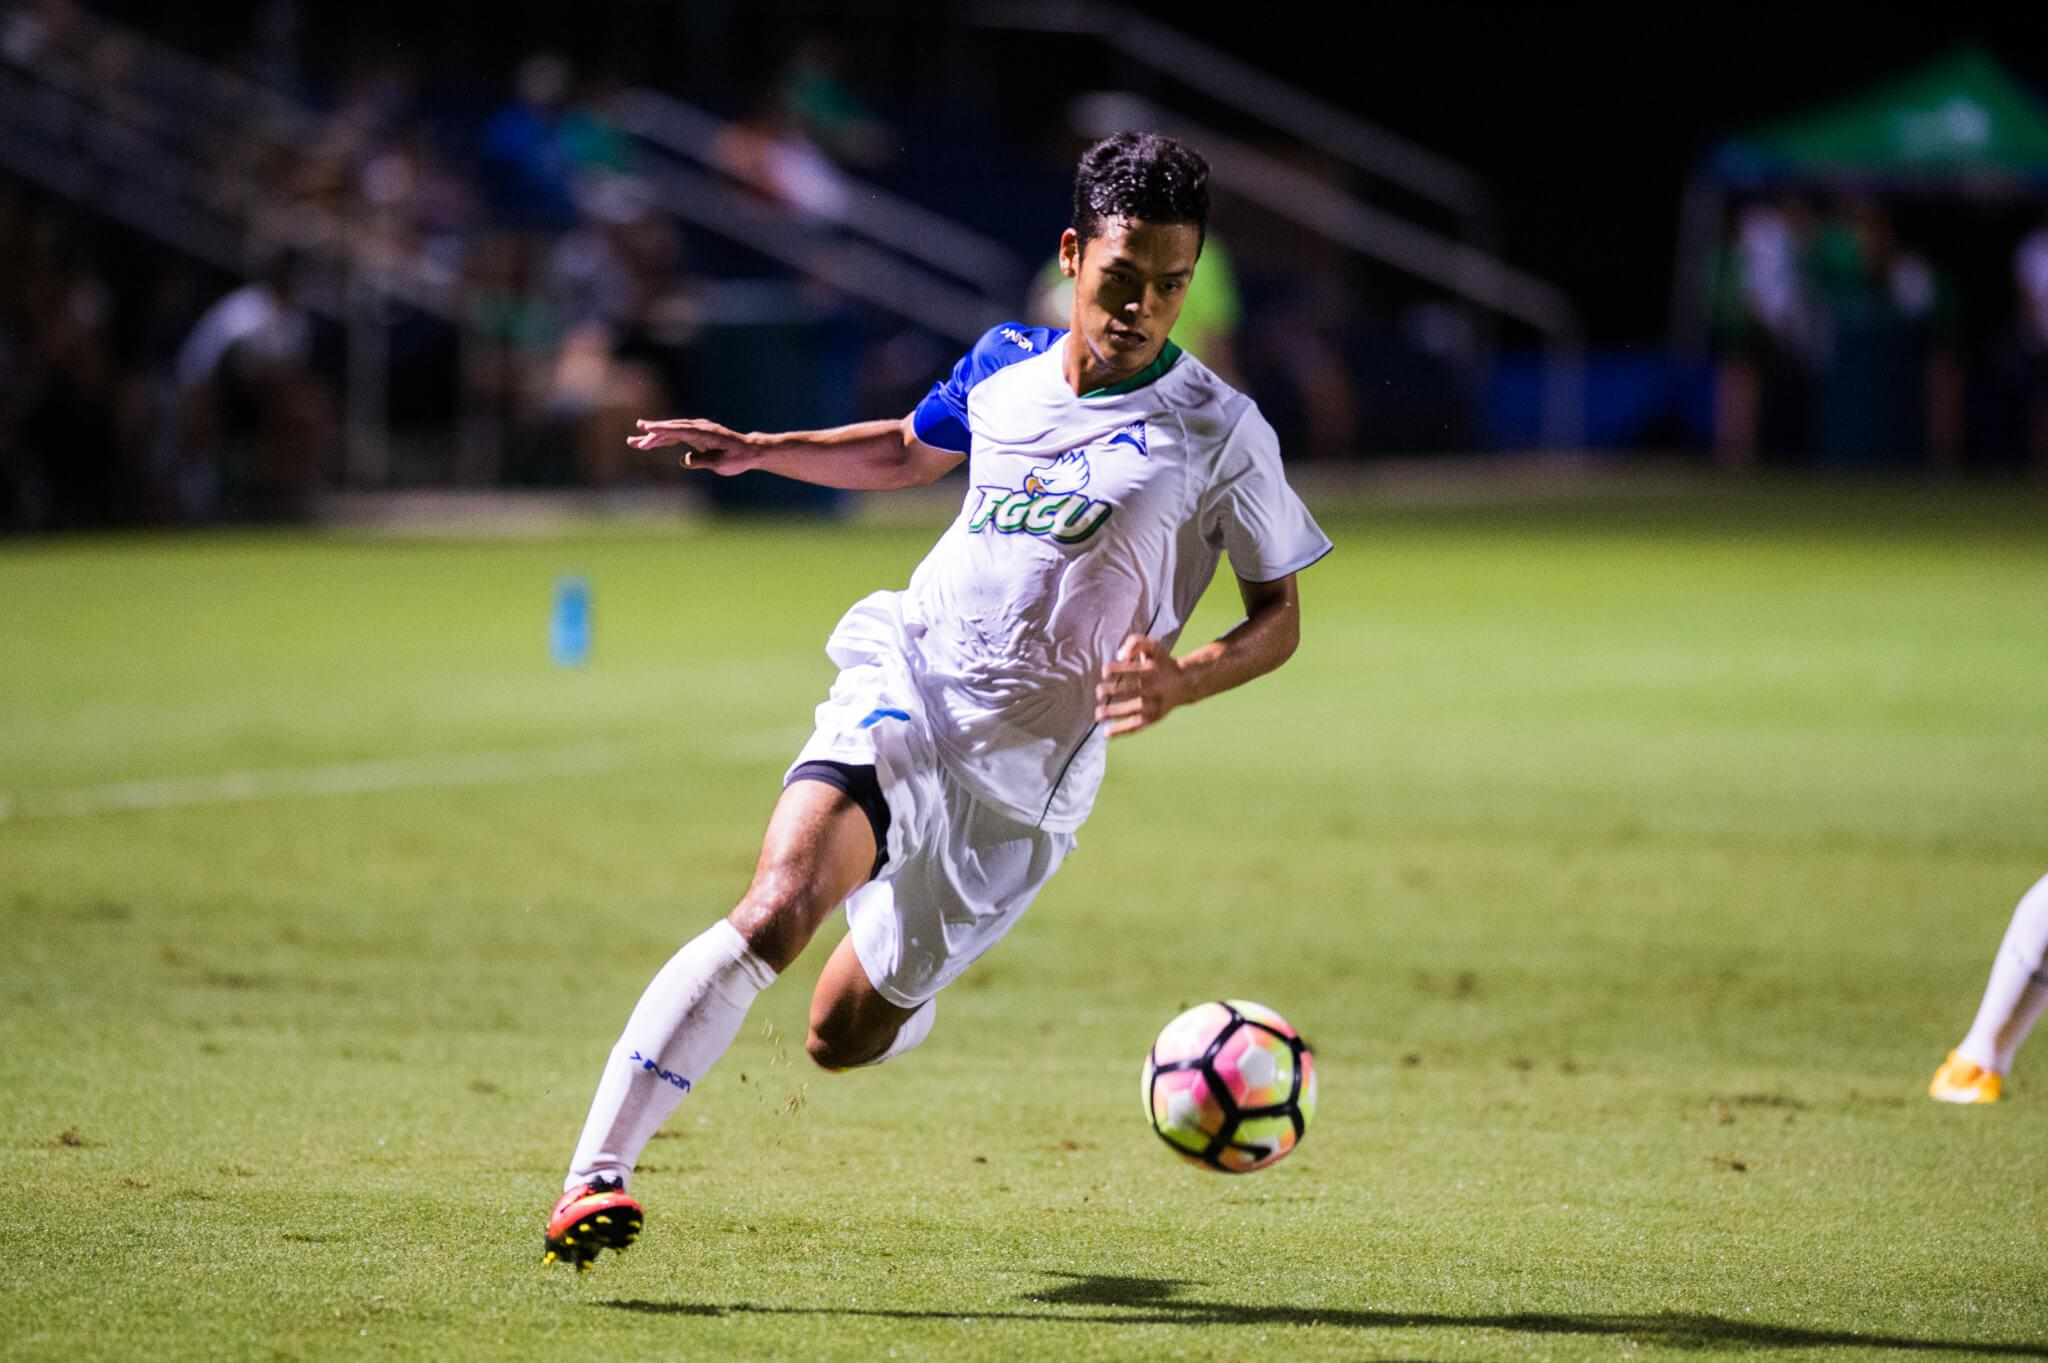 Preview: FGCU men's soccer at Rutgers